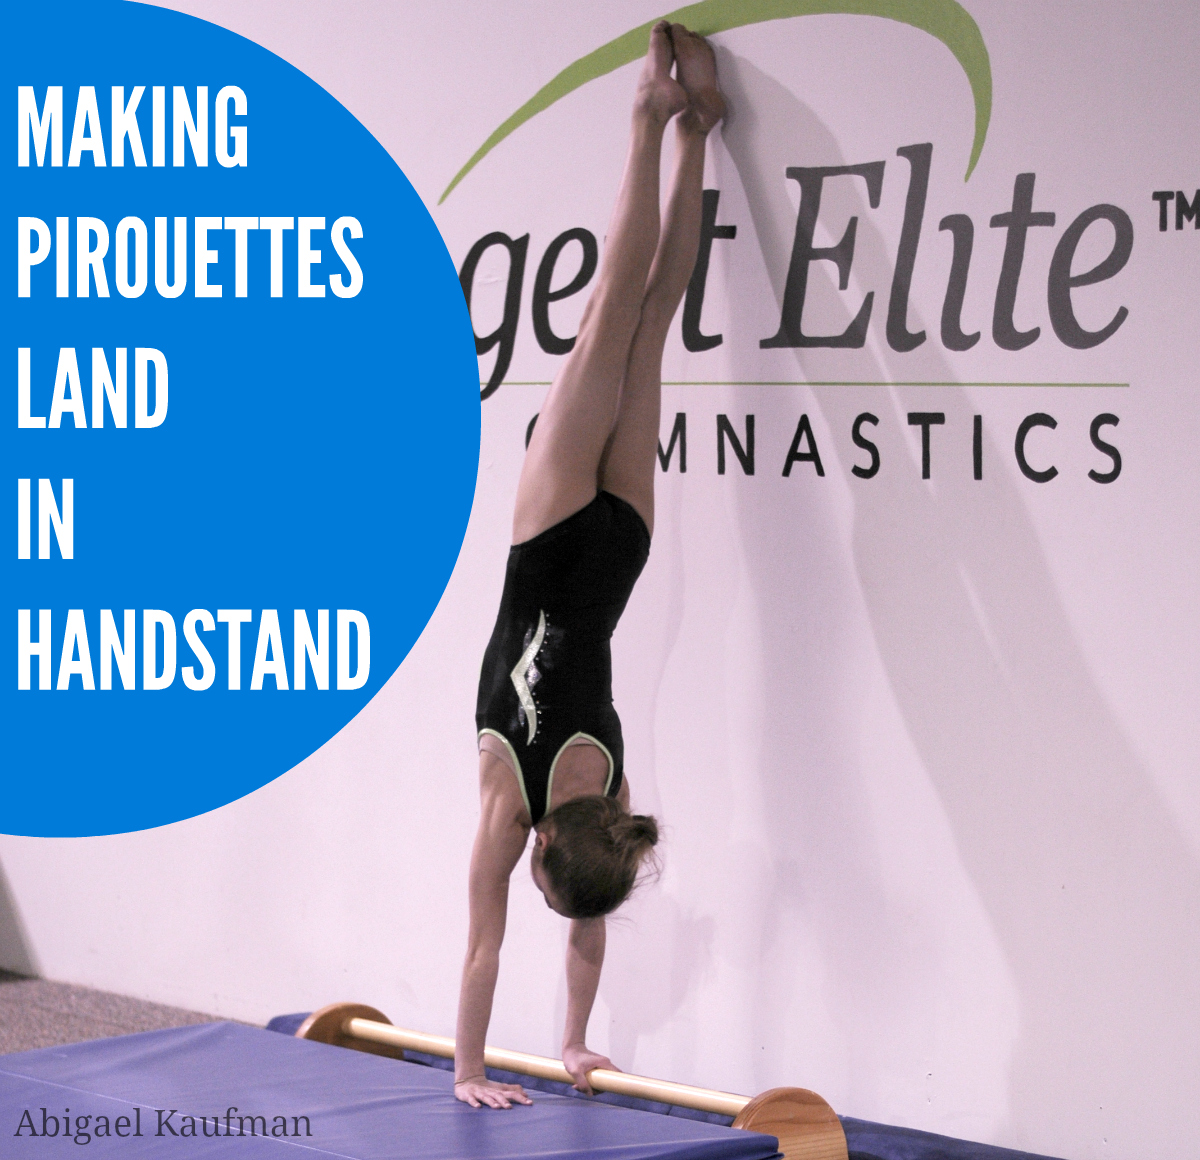 Making pirouettes land in handstand